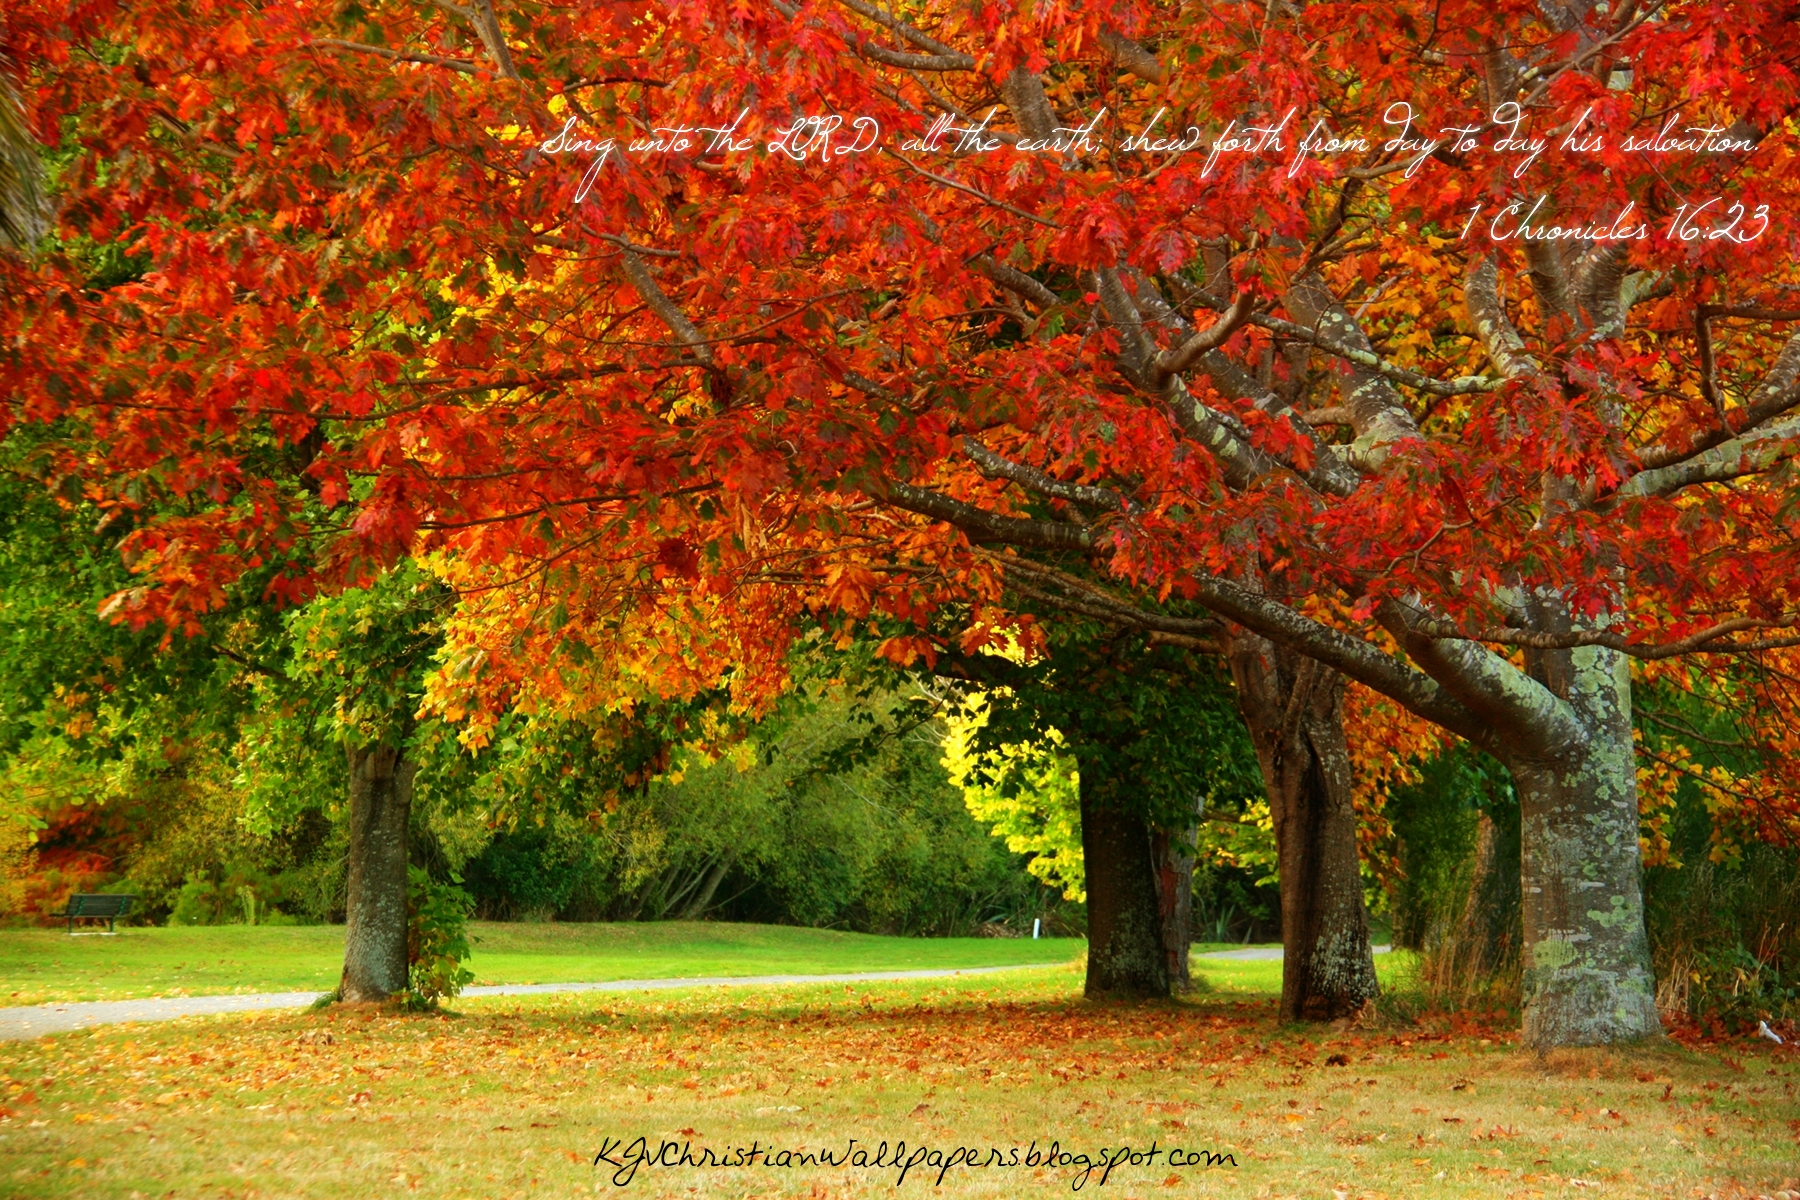 Fall Farm Wallpapers httpkjvchristianwallpapersblogspotcom2010 1800x1200